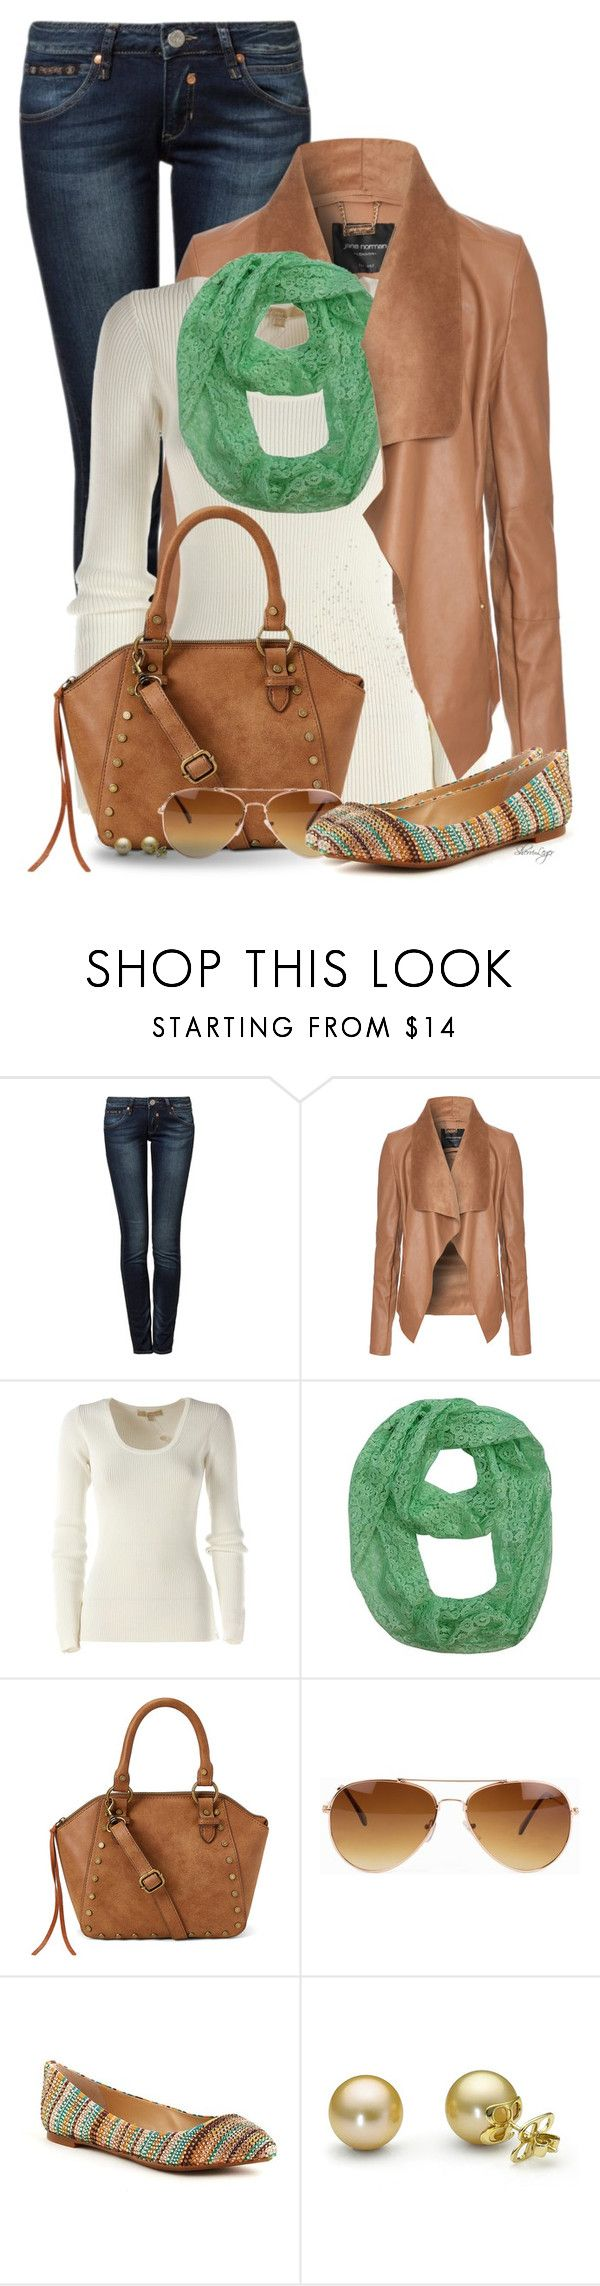 """""""Untitled #2783"""" by sherri-leger ❤ liked on Polyvore featuring Herrlicher, Jane Norman, Michael Kors, T-shirt & Jeans, Rut&Circle and Enzo Angiolini"""